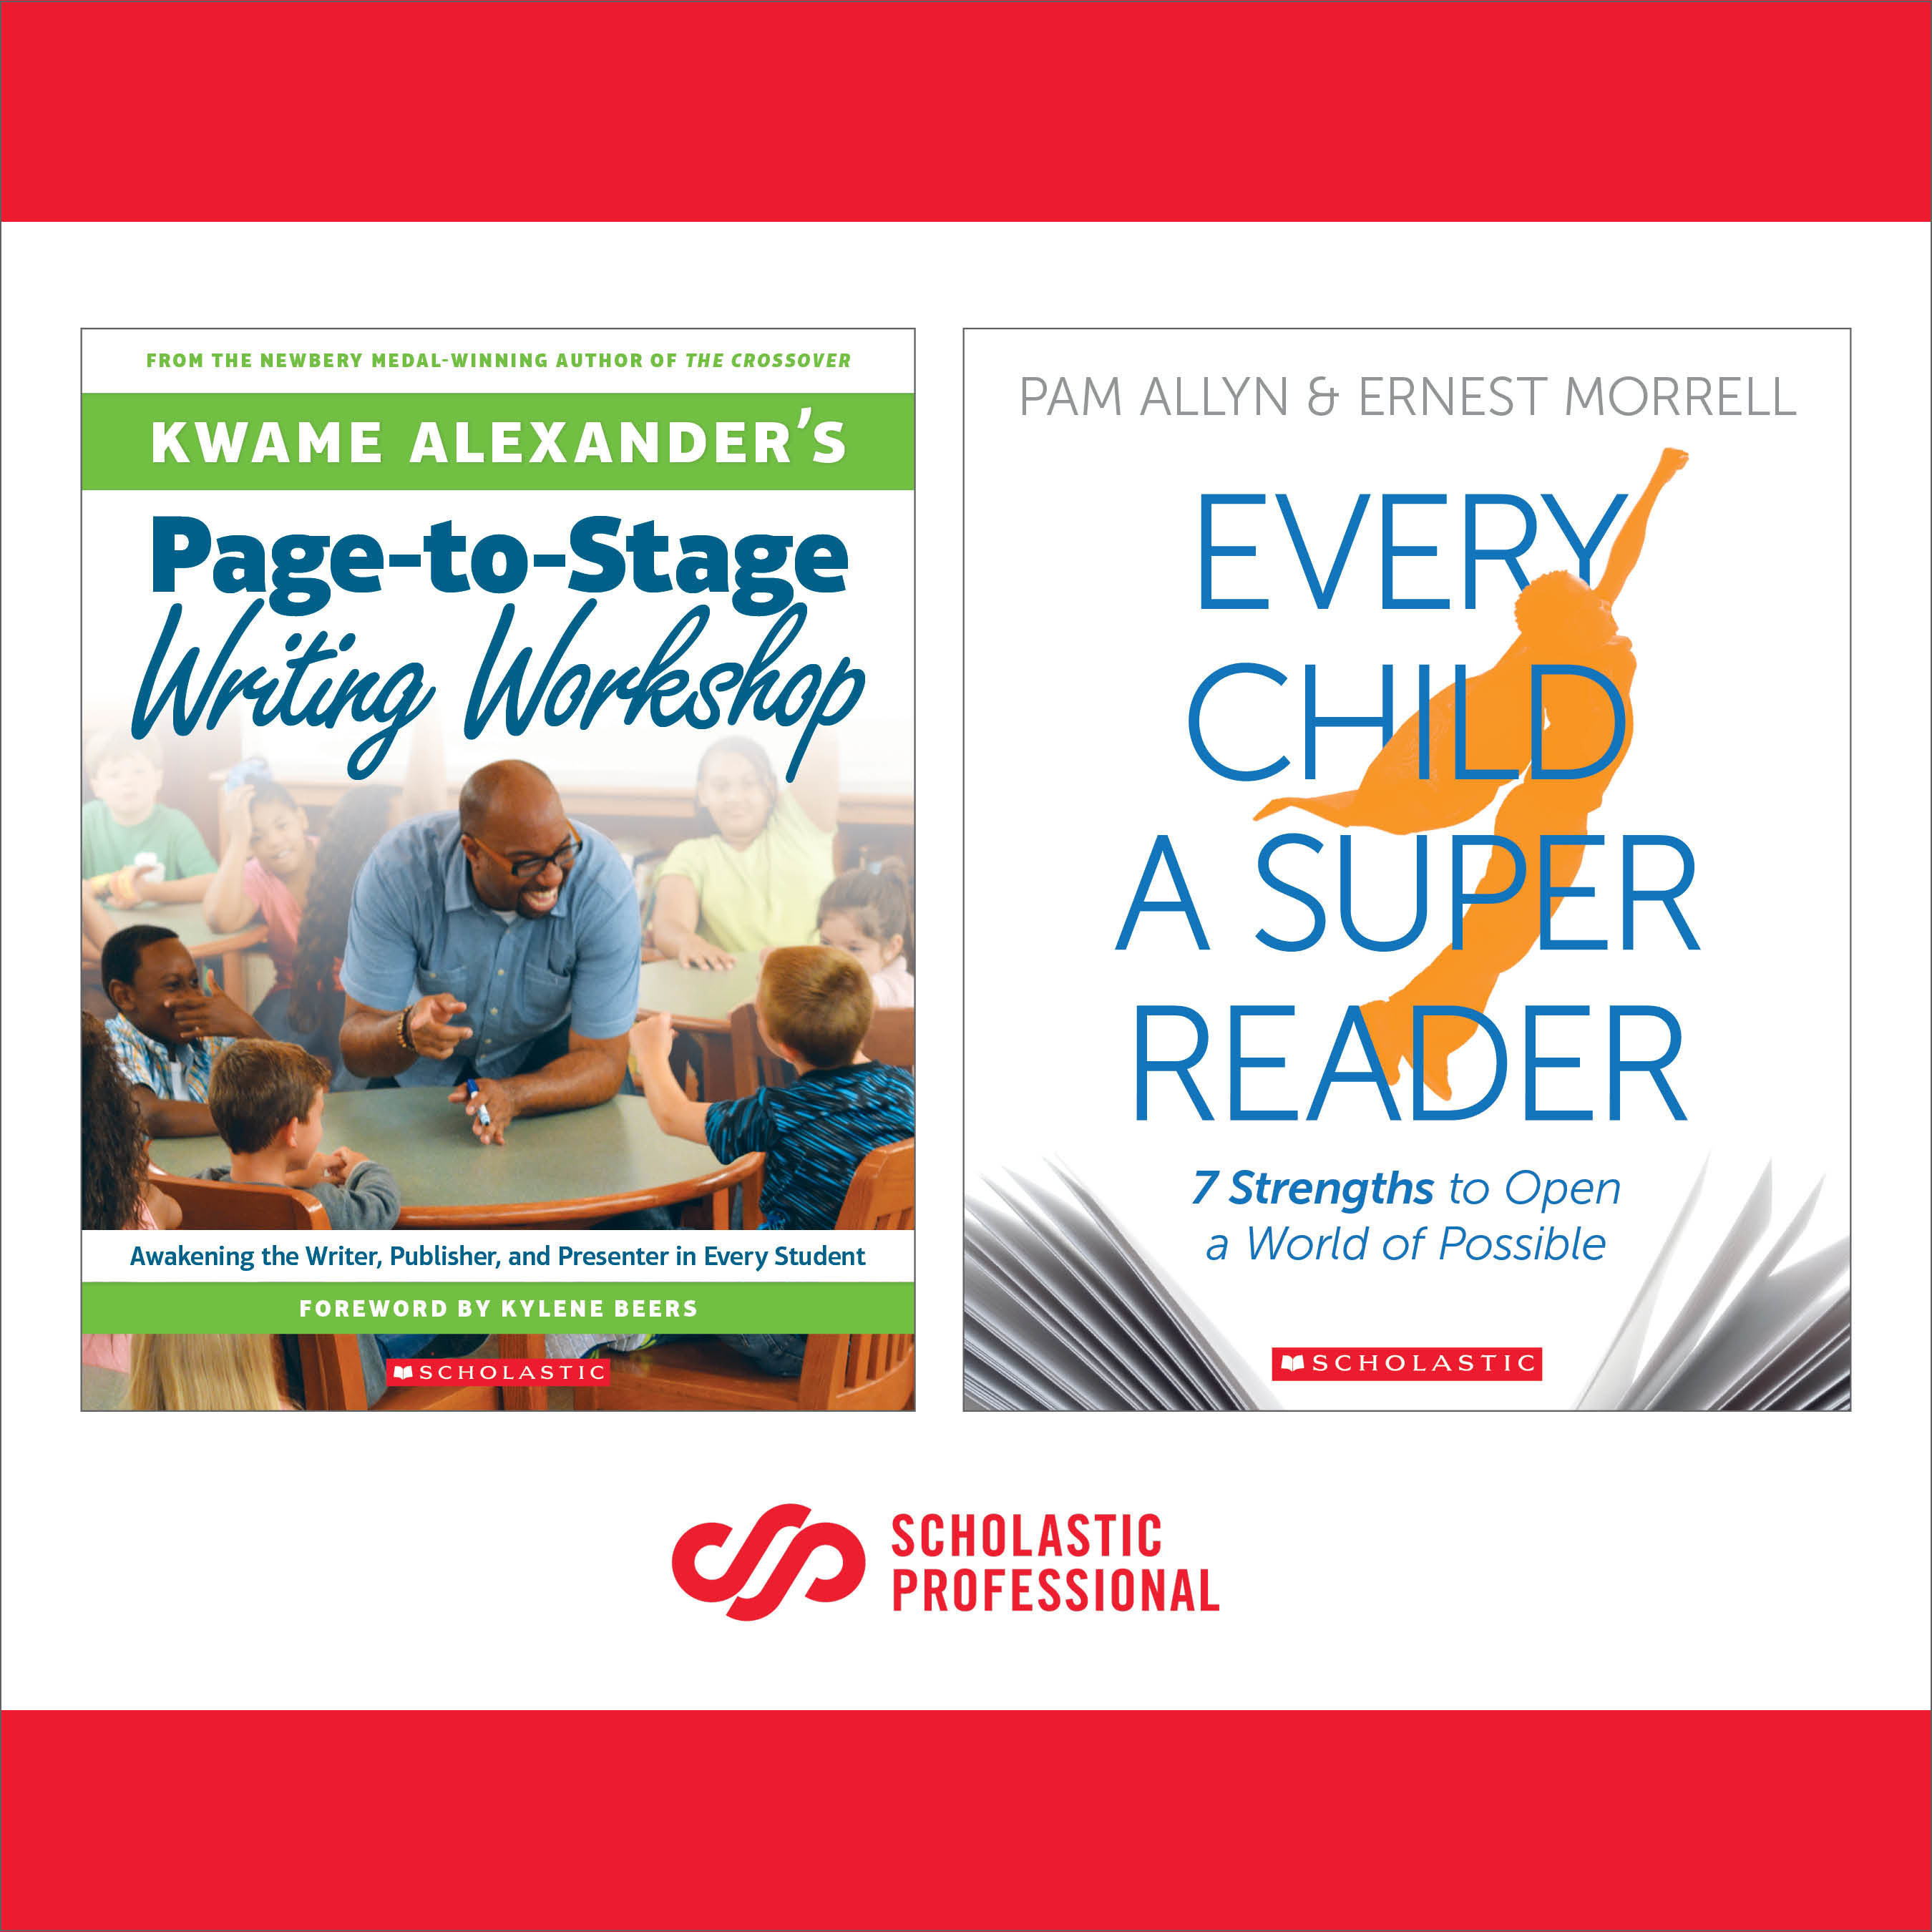 Scholastic Releases Two New Professional Books on K-12 Literacy Instruction